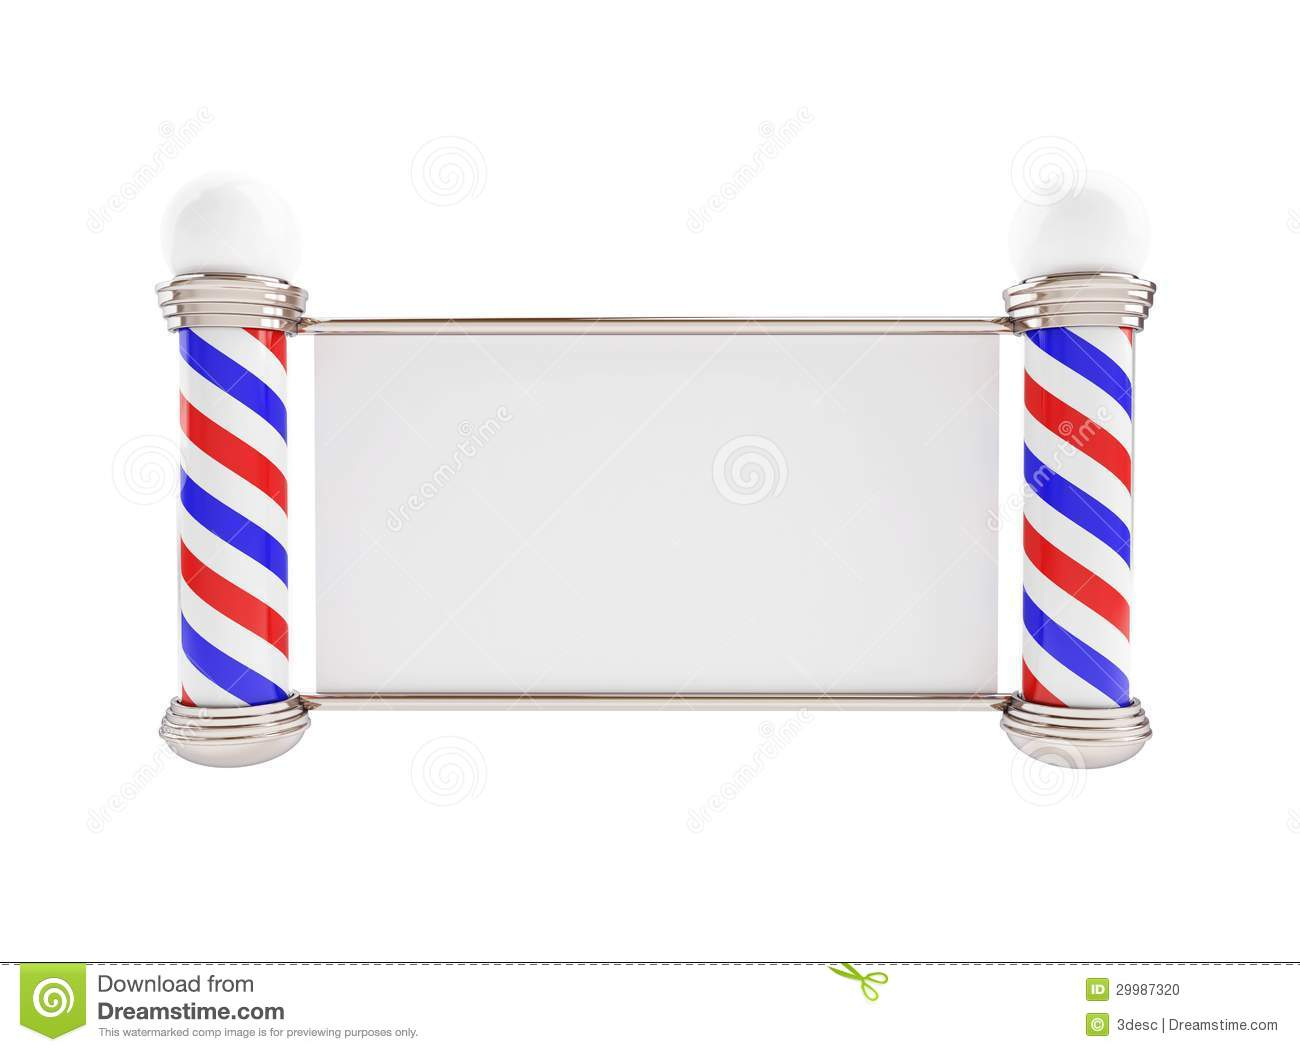 Barber Background : Barber Pole On A White Background Stock Photo - Image: 29987320